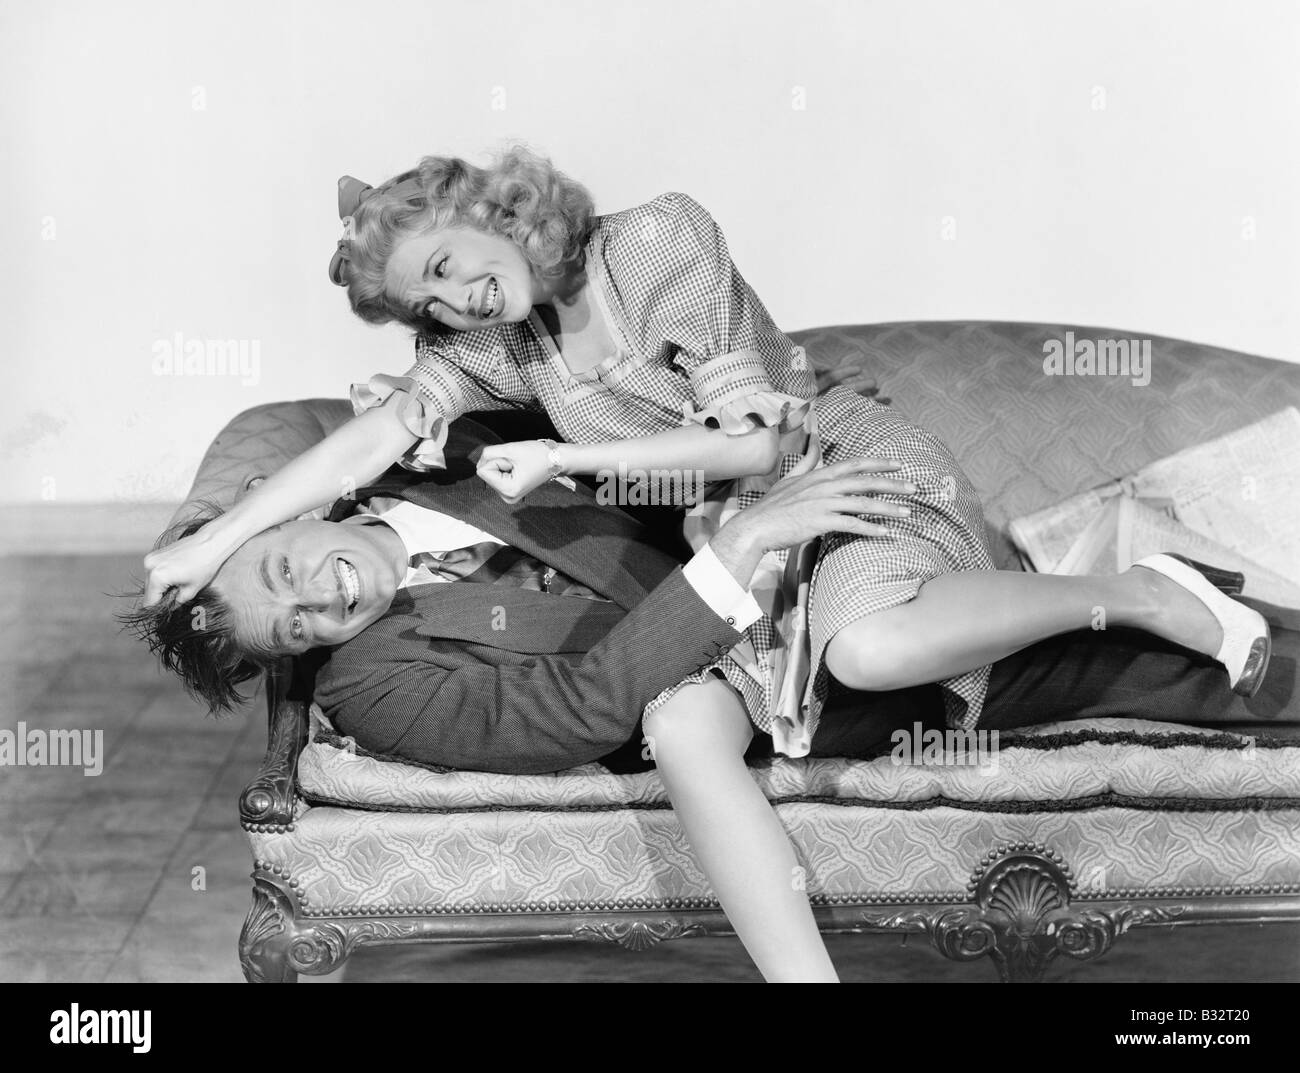 Couple having a playful fight on a couch Stock Photo